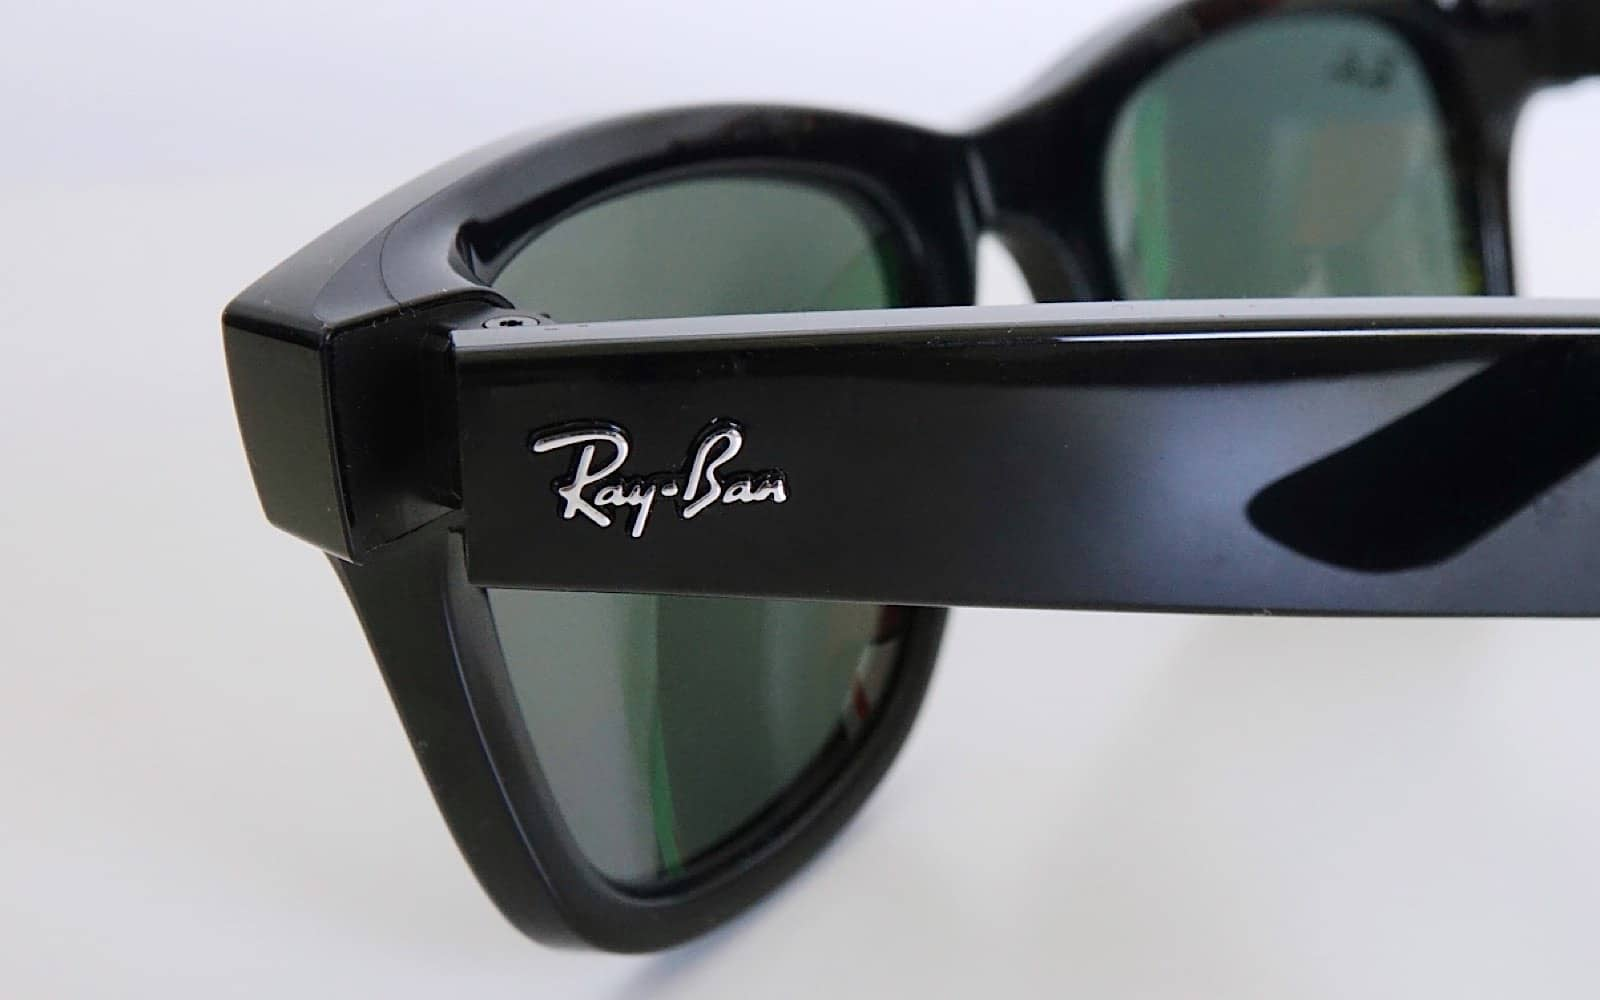 """The """"Ray-Ban"""" logo on the Facebook Ray-Ban Stories smartglasses tells you these are real glasses, not just a knock-off by another brand."""